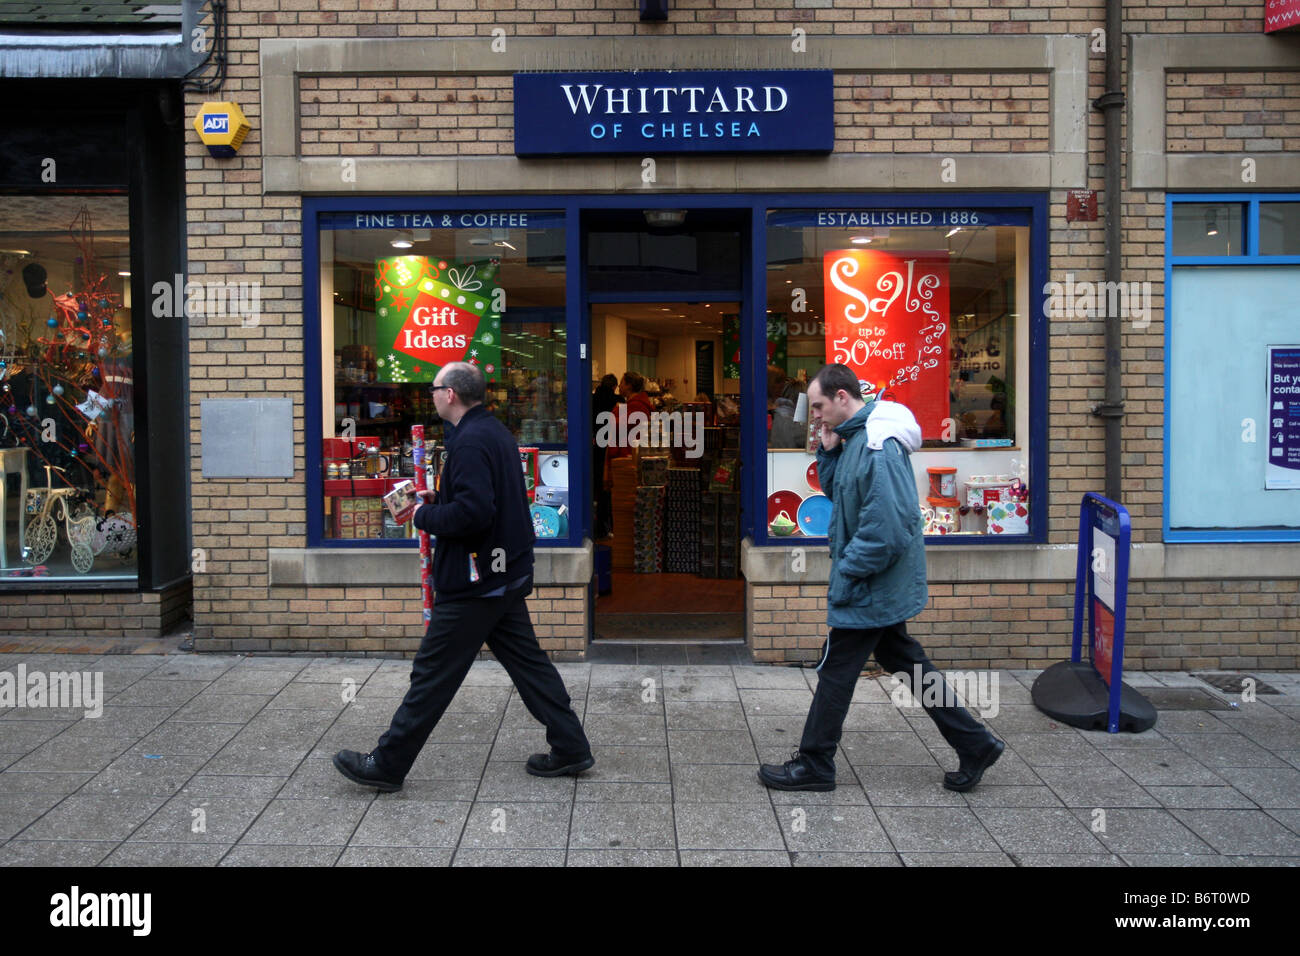 WHITTARD OF CHELSEA COFFEE AND TEA SHOP - Stock Image